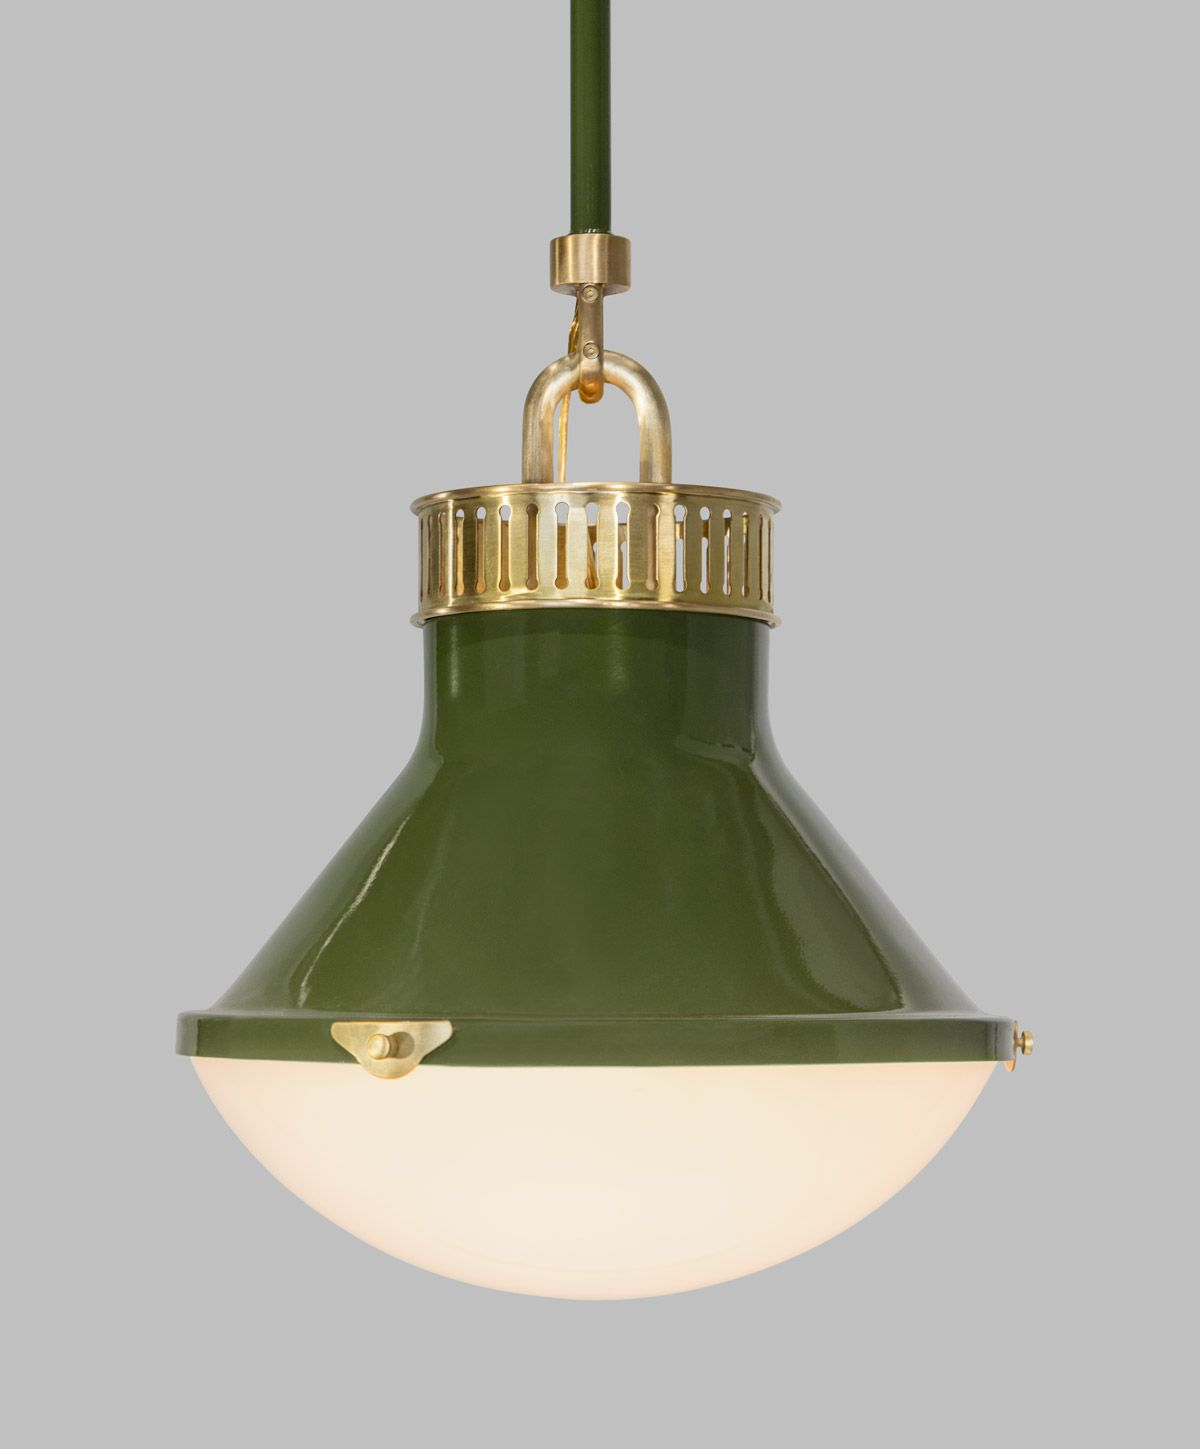 Check out the lundy hang light fixture from the urban electric co